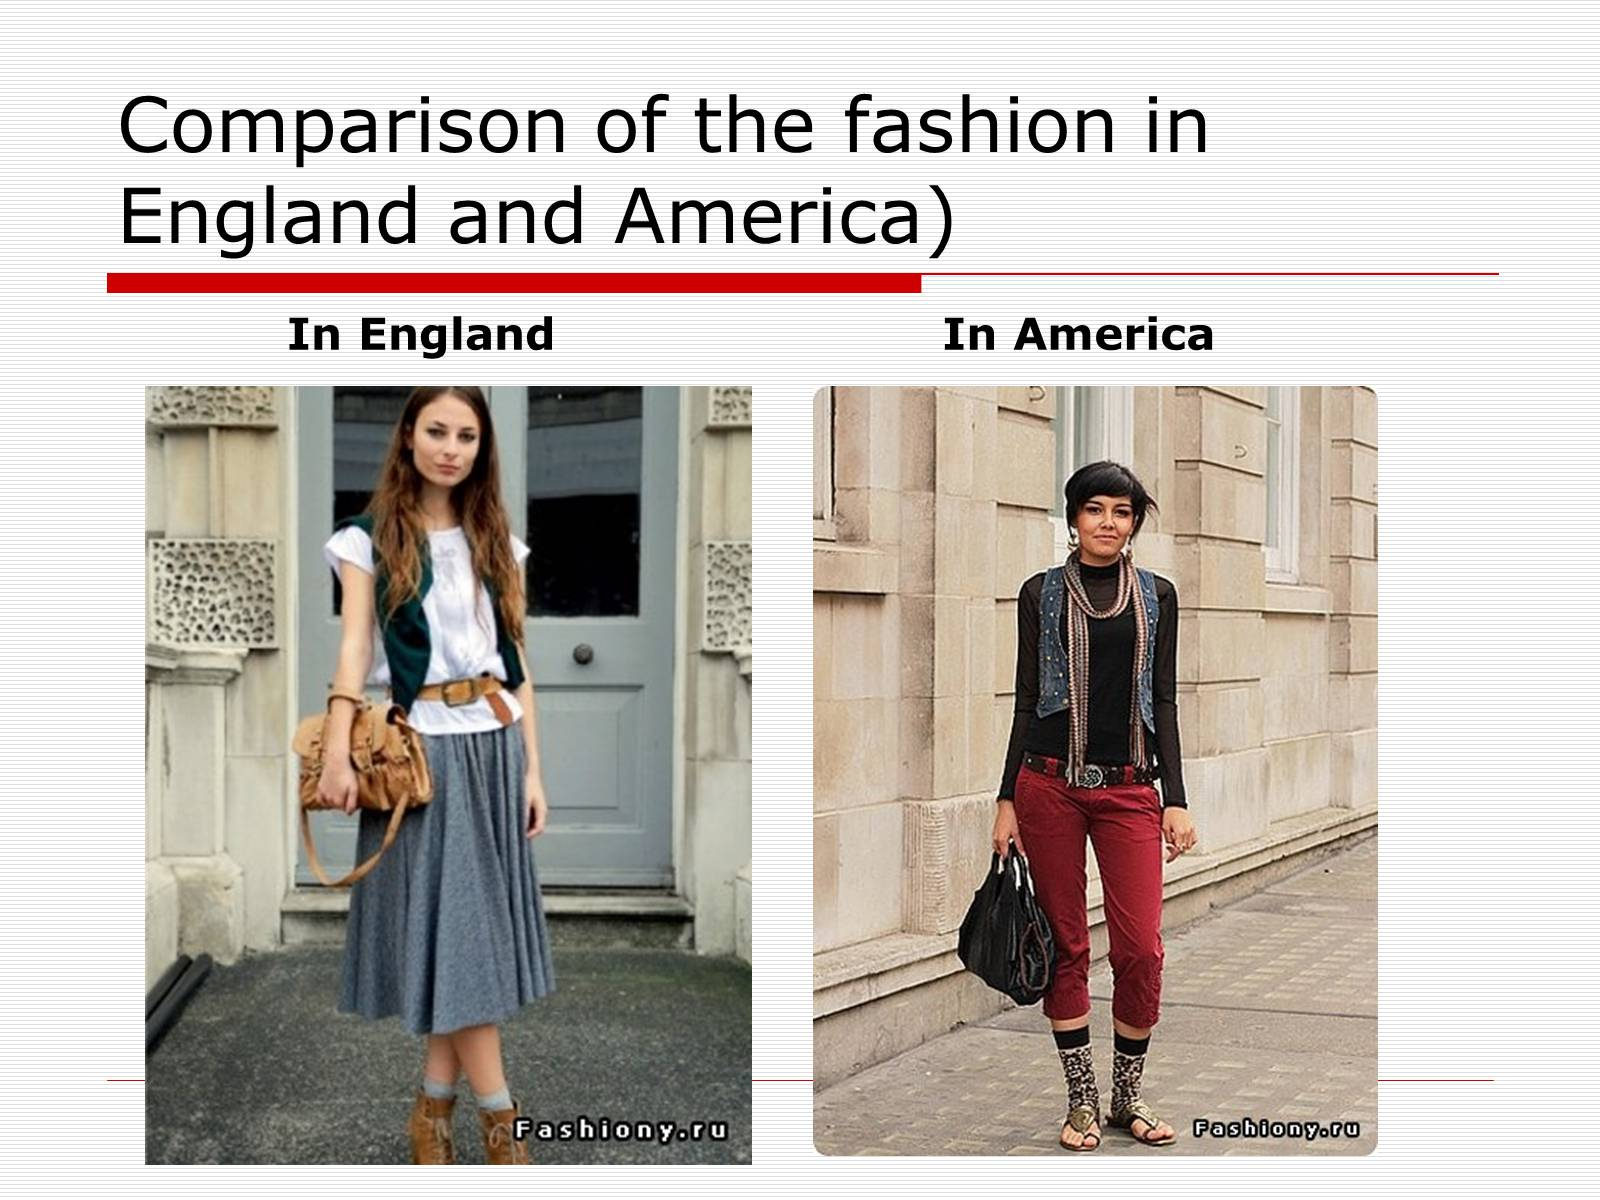 Презентація на тему «Comparison of the fashion in England and America» - Слайд #39